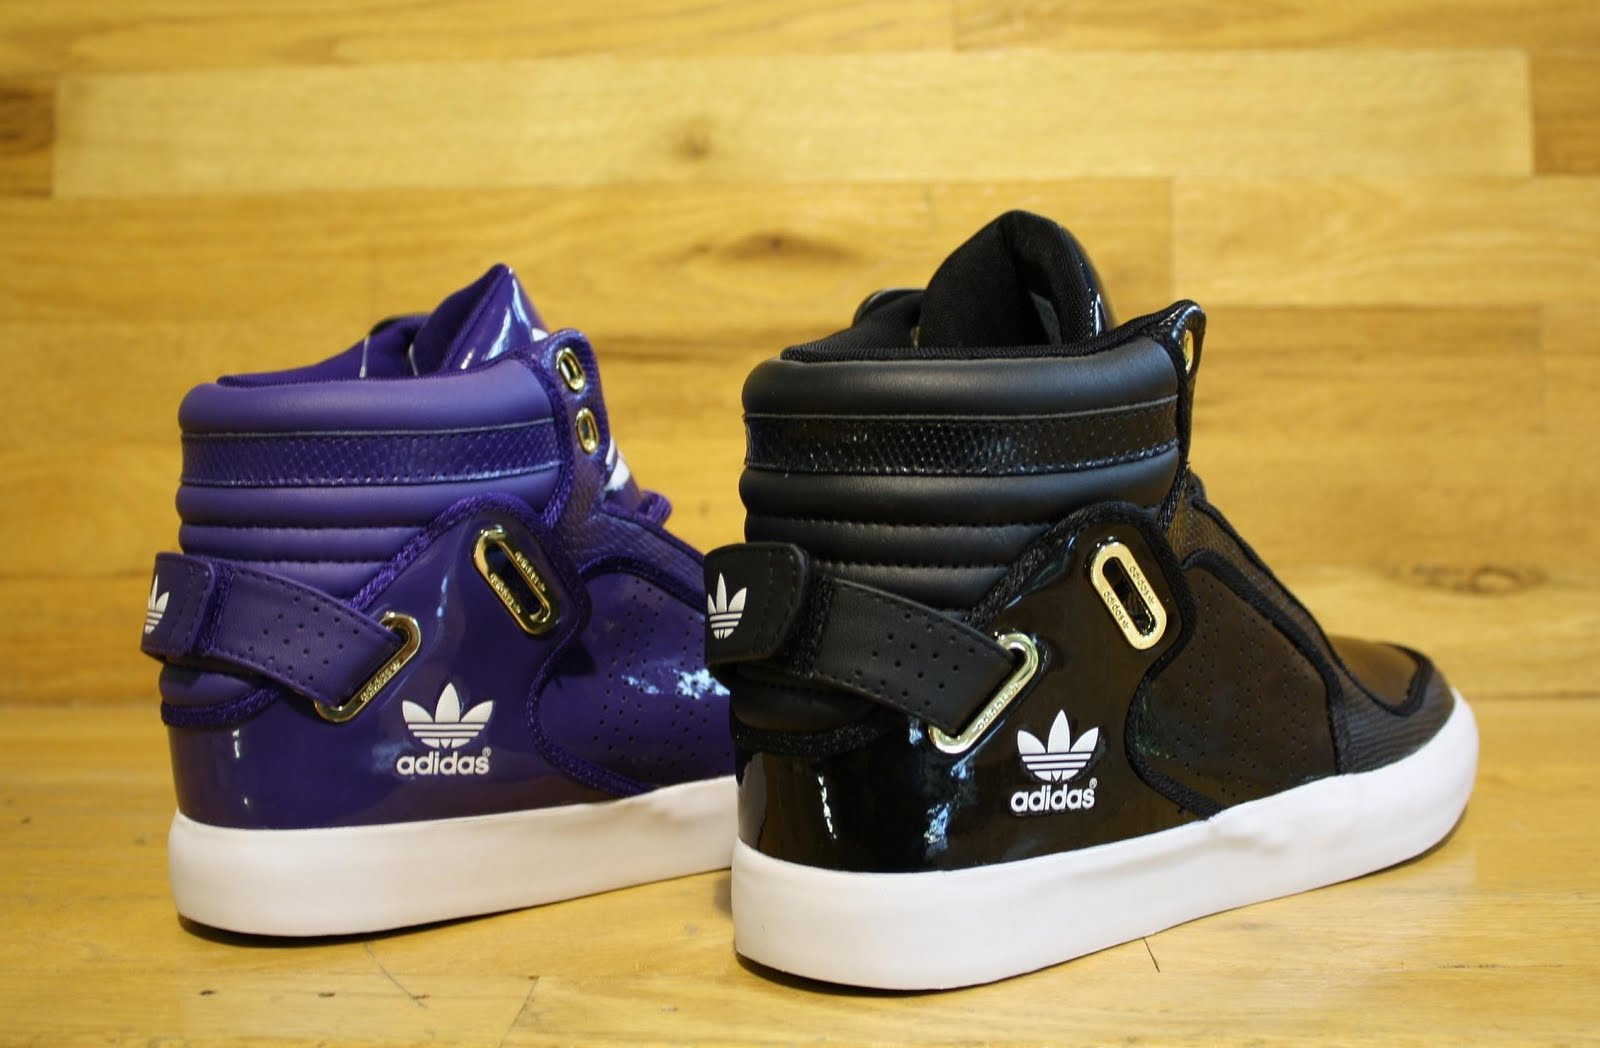 8d2566a0f37f Dr. Jays Stores  New Adidas Adi-Rise Patent leather Available In Dr ...